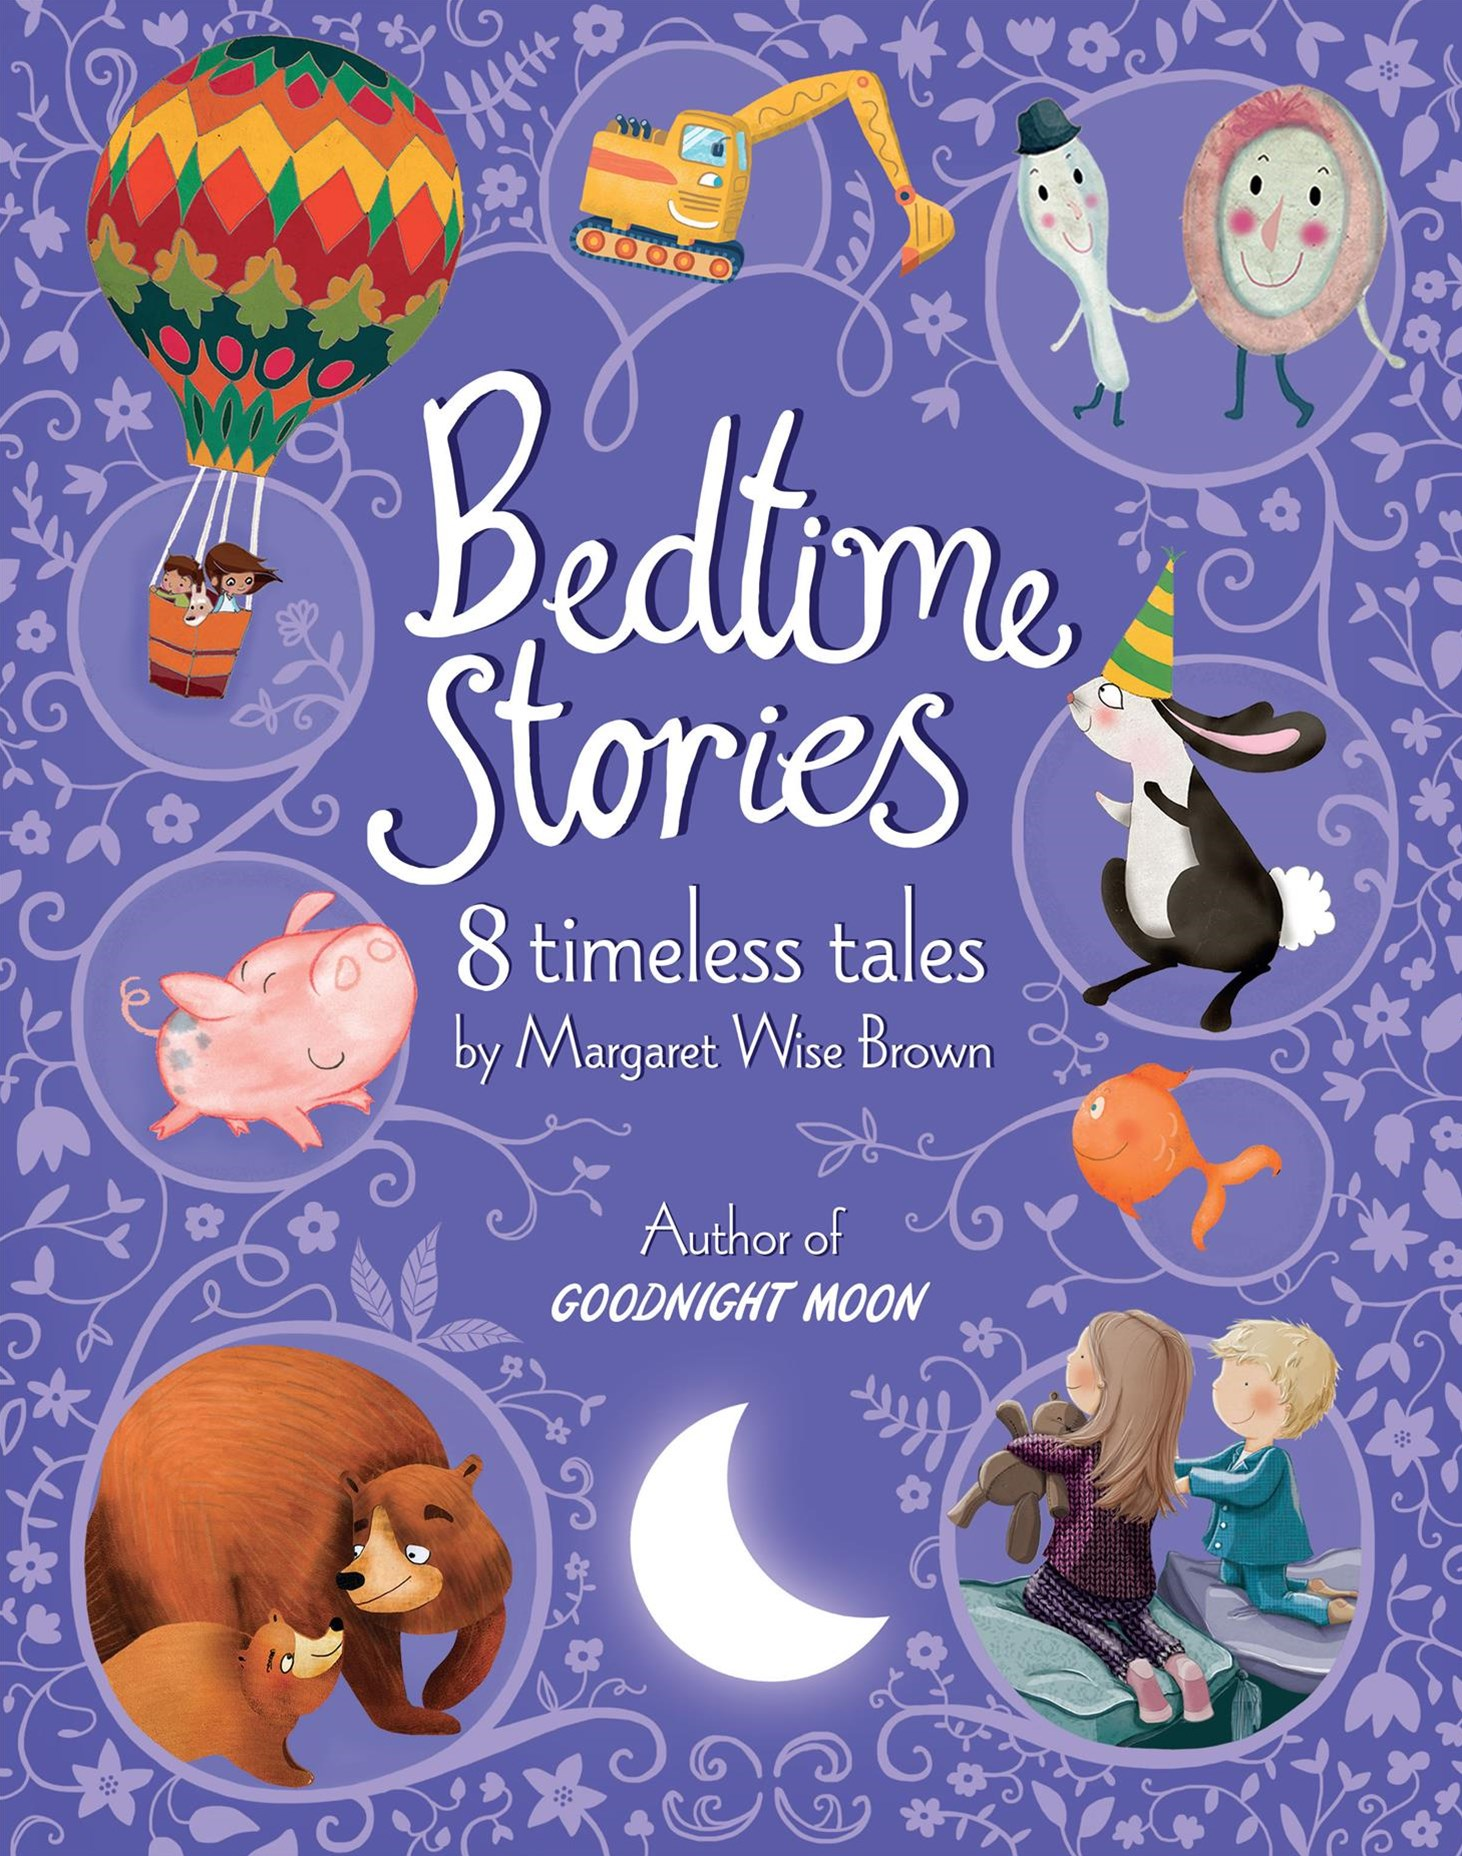 Bedtime Stories from Margaret Wise Brown